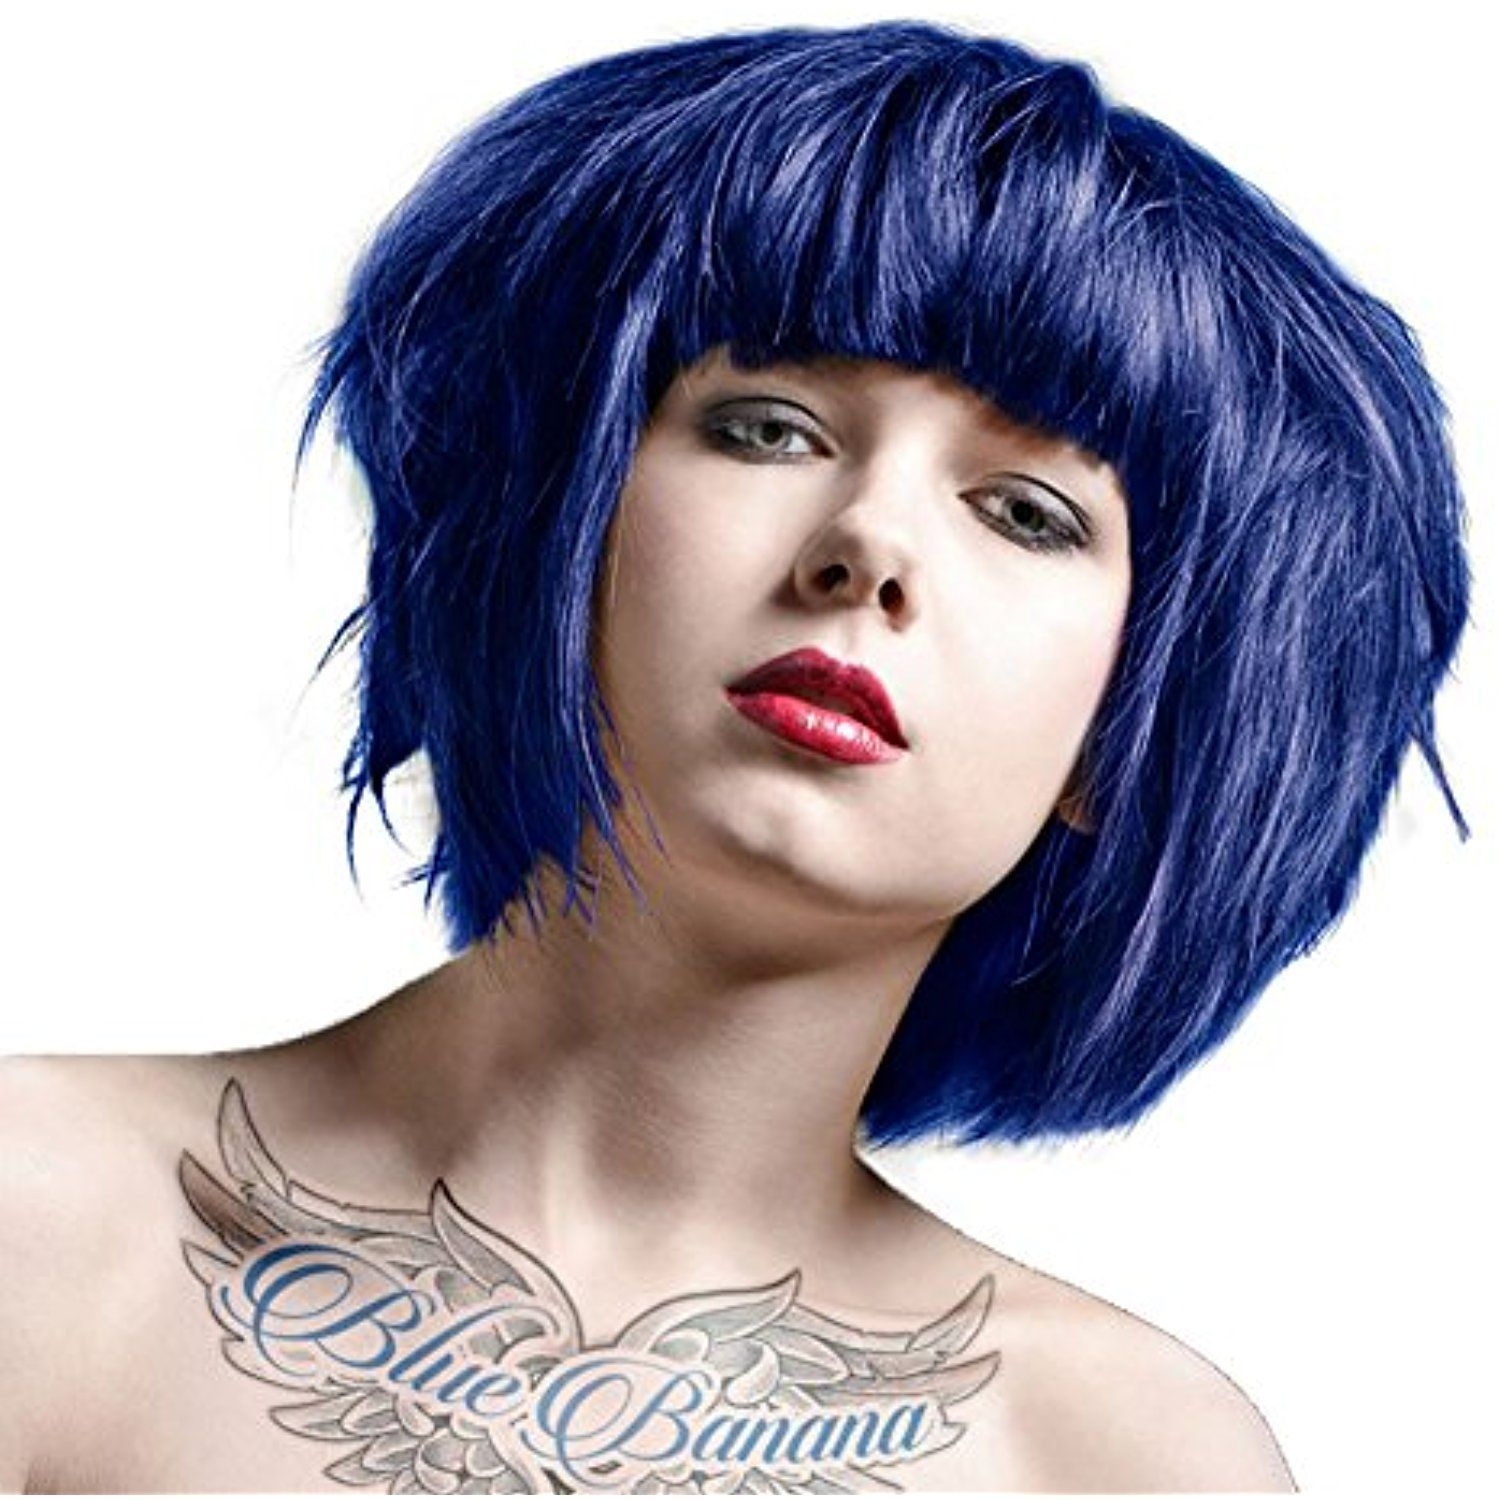 10 Most Semi And DemiPermanent Hair Color